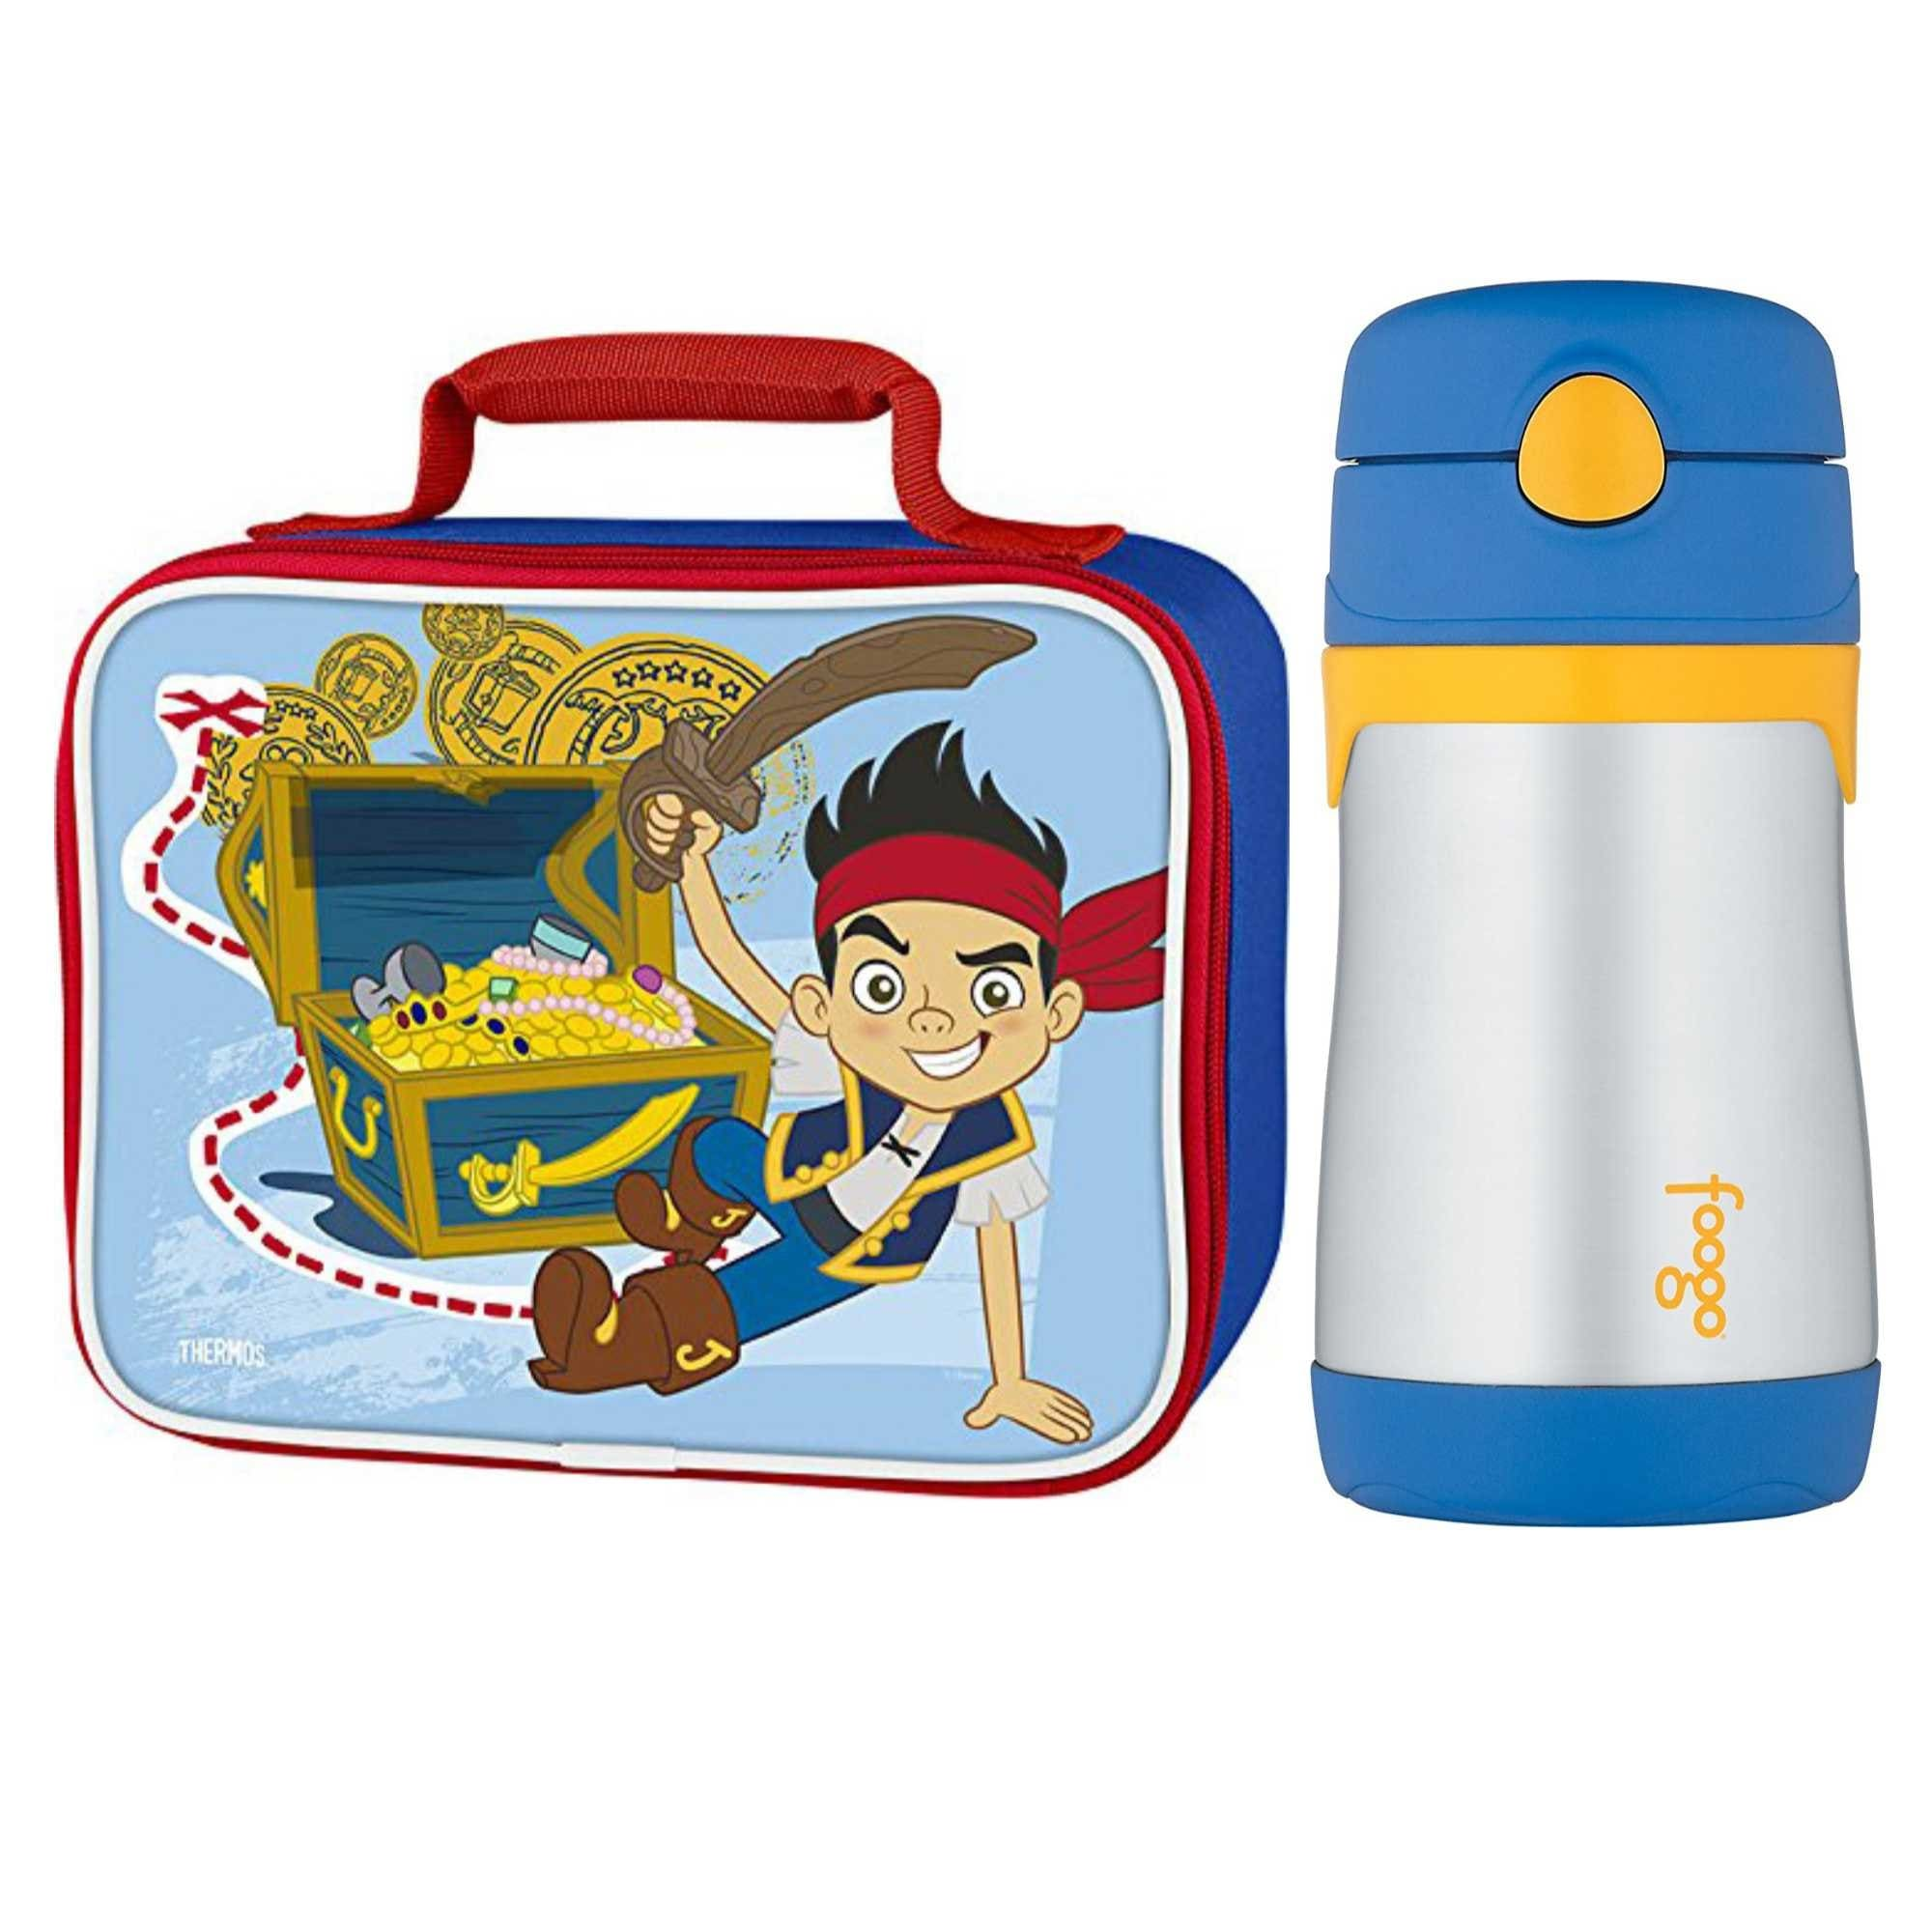 0cb5e33ff9d Shop Thermos Soft Lunch Kit w  10oz Straw Bottle (Jake and the Neverland  Pirates) - Free Shipping On Orders Over  45 - Overstock.com - 19628105